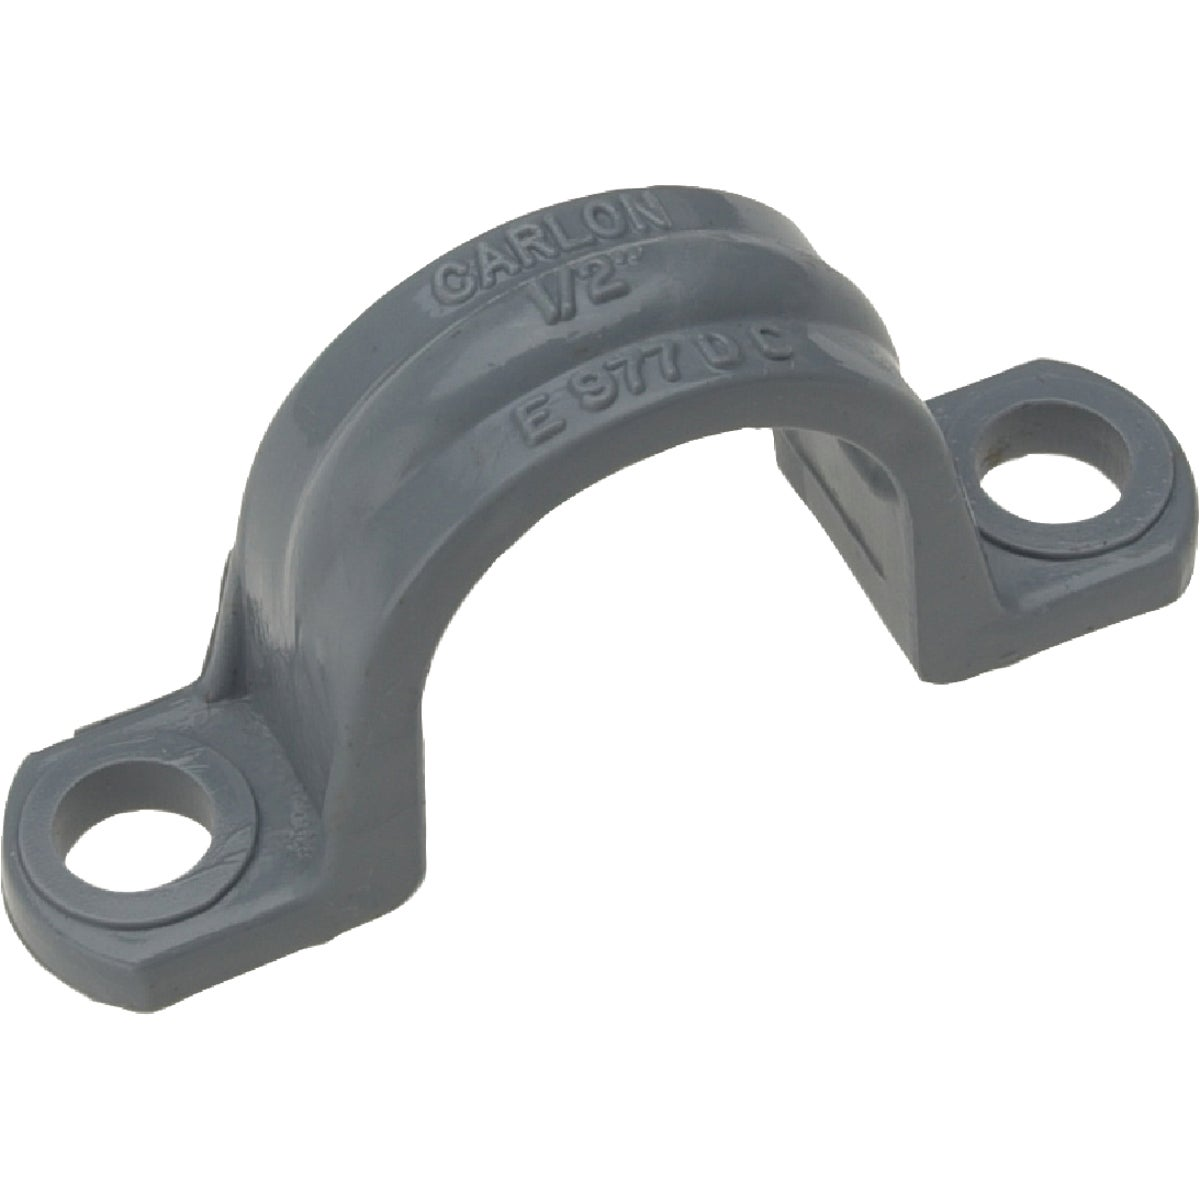 "1/2"" PVC STRAP - E977DCCTN by Thomas & Betts"